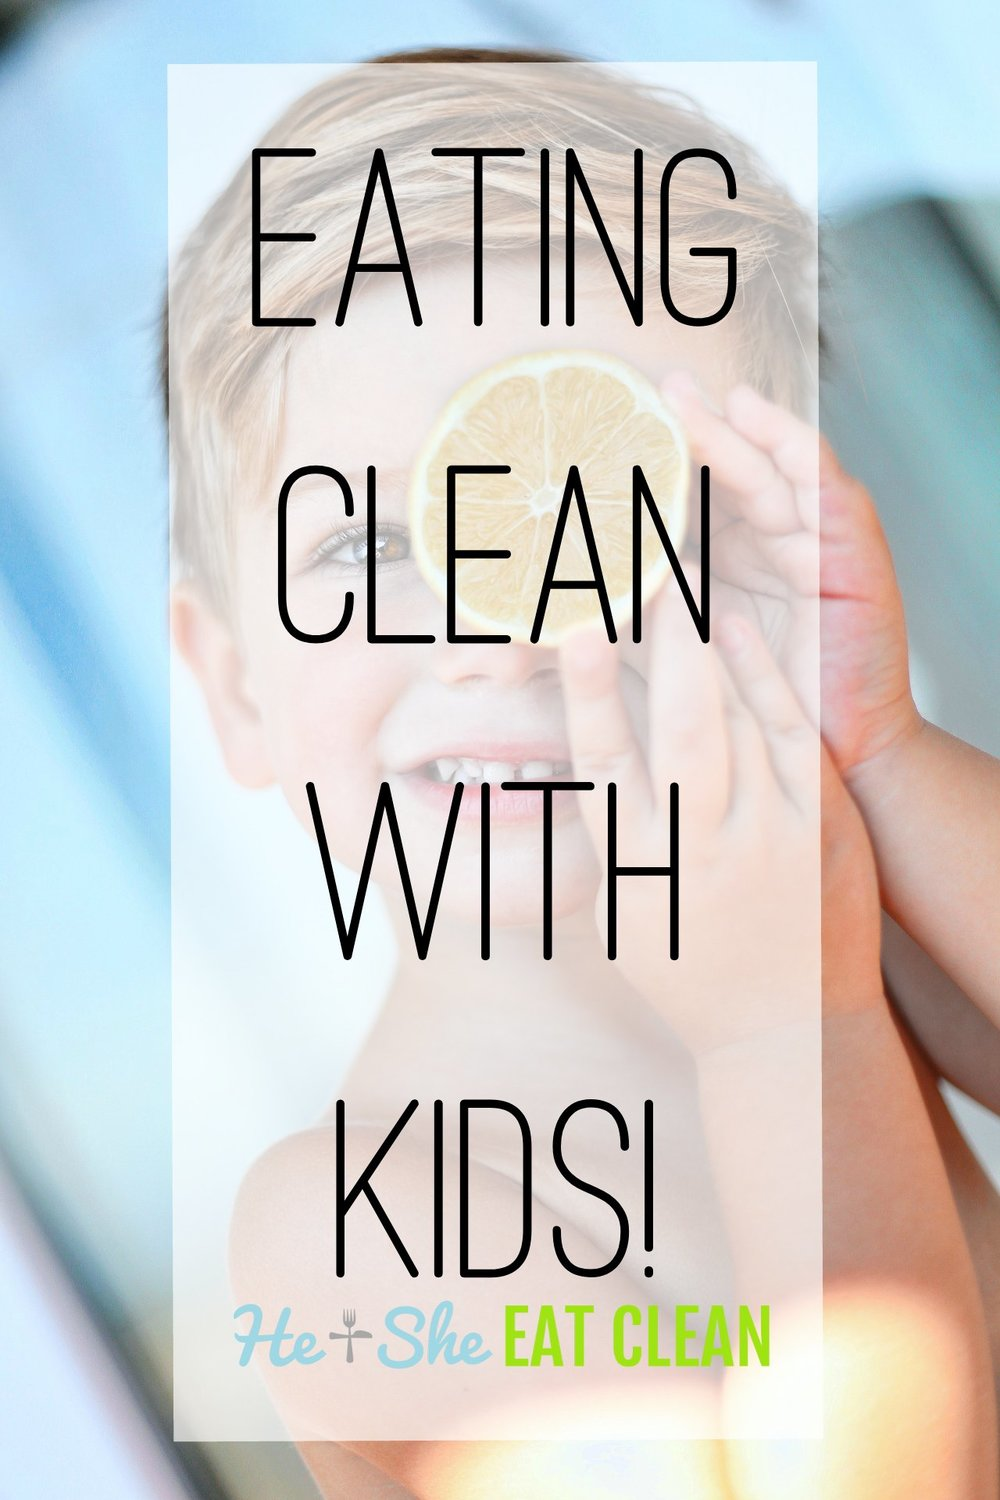 Eating Clean with Kids!